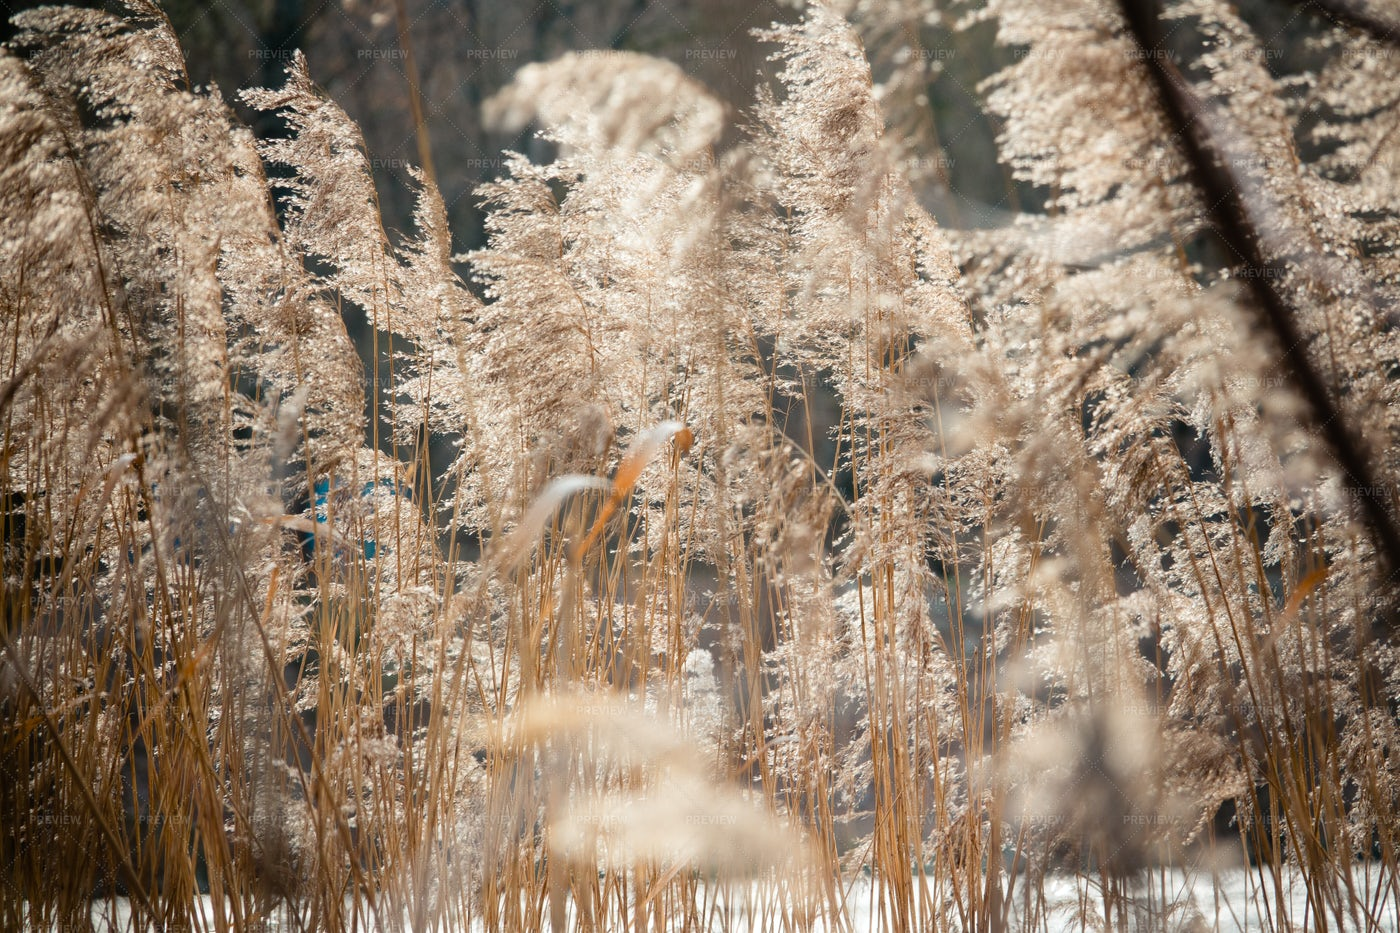 Dry Reeds On The Lake: Stock Photos